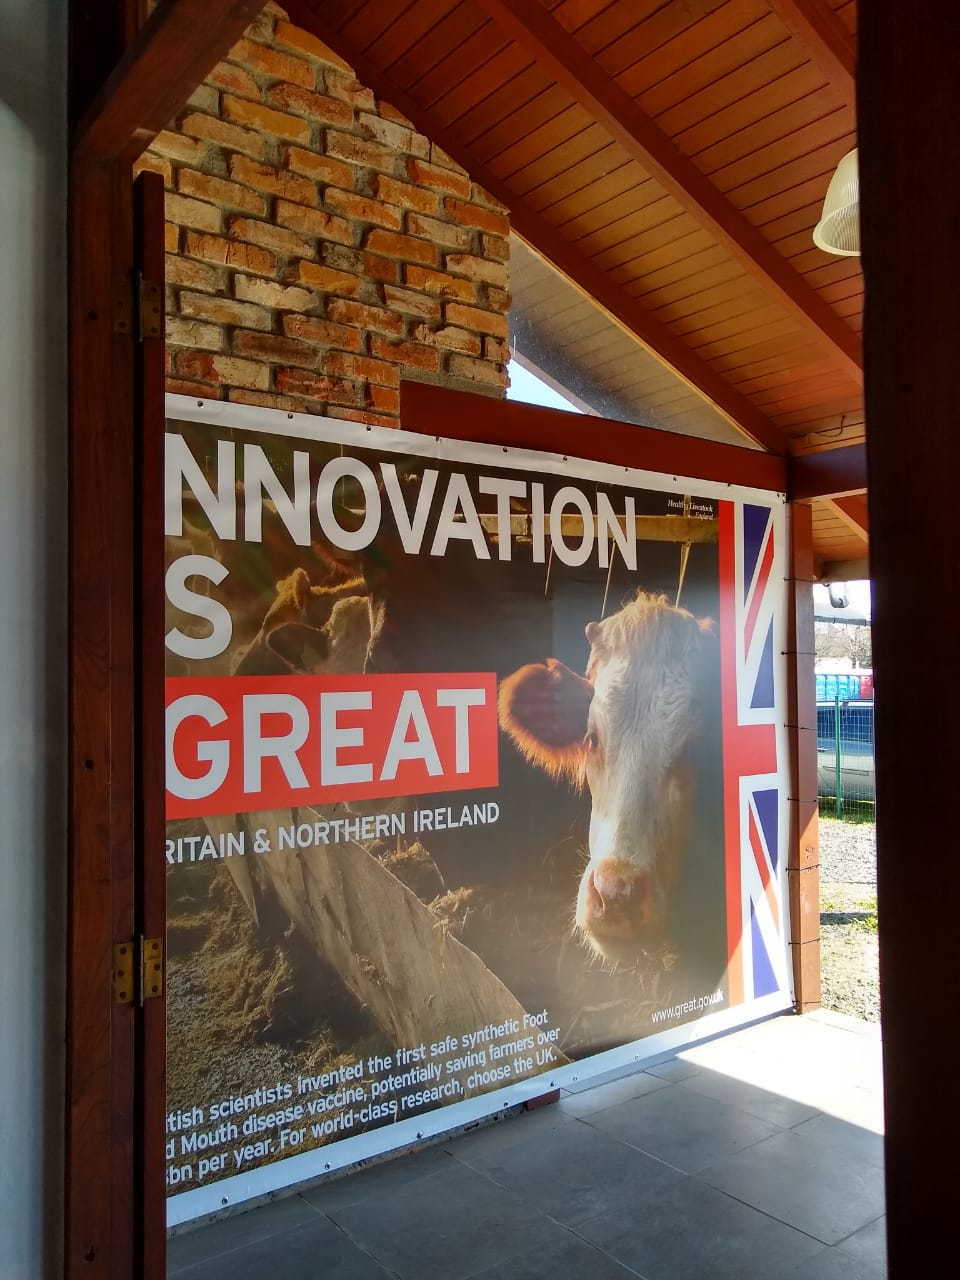 The GREAT branding on the British House at ExpoInter